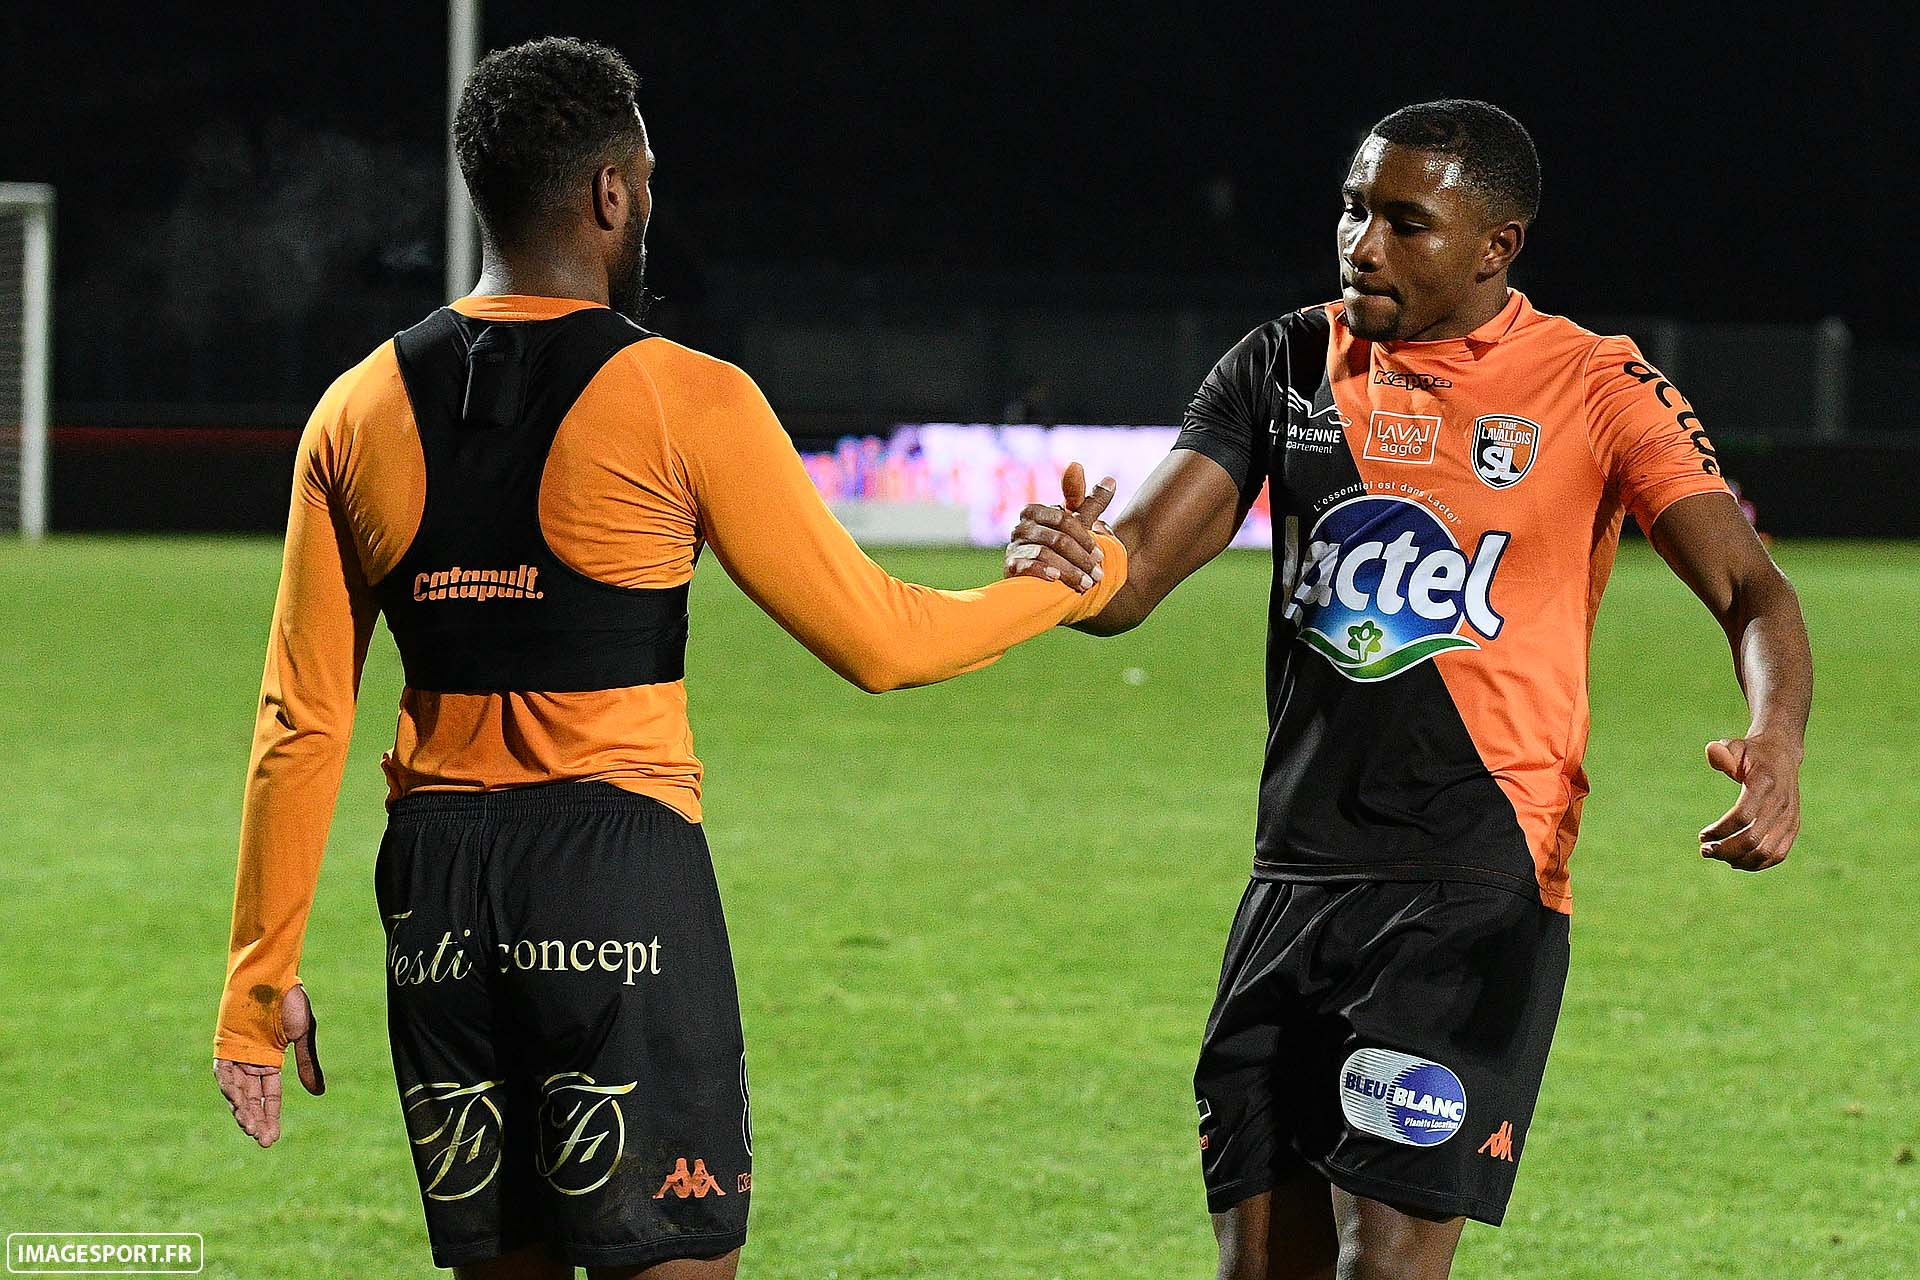 César ZEOULA (Stade Lavallois) / Sharly MABUSSI (Stade Lavallois)